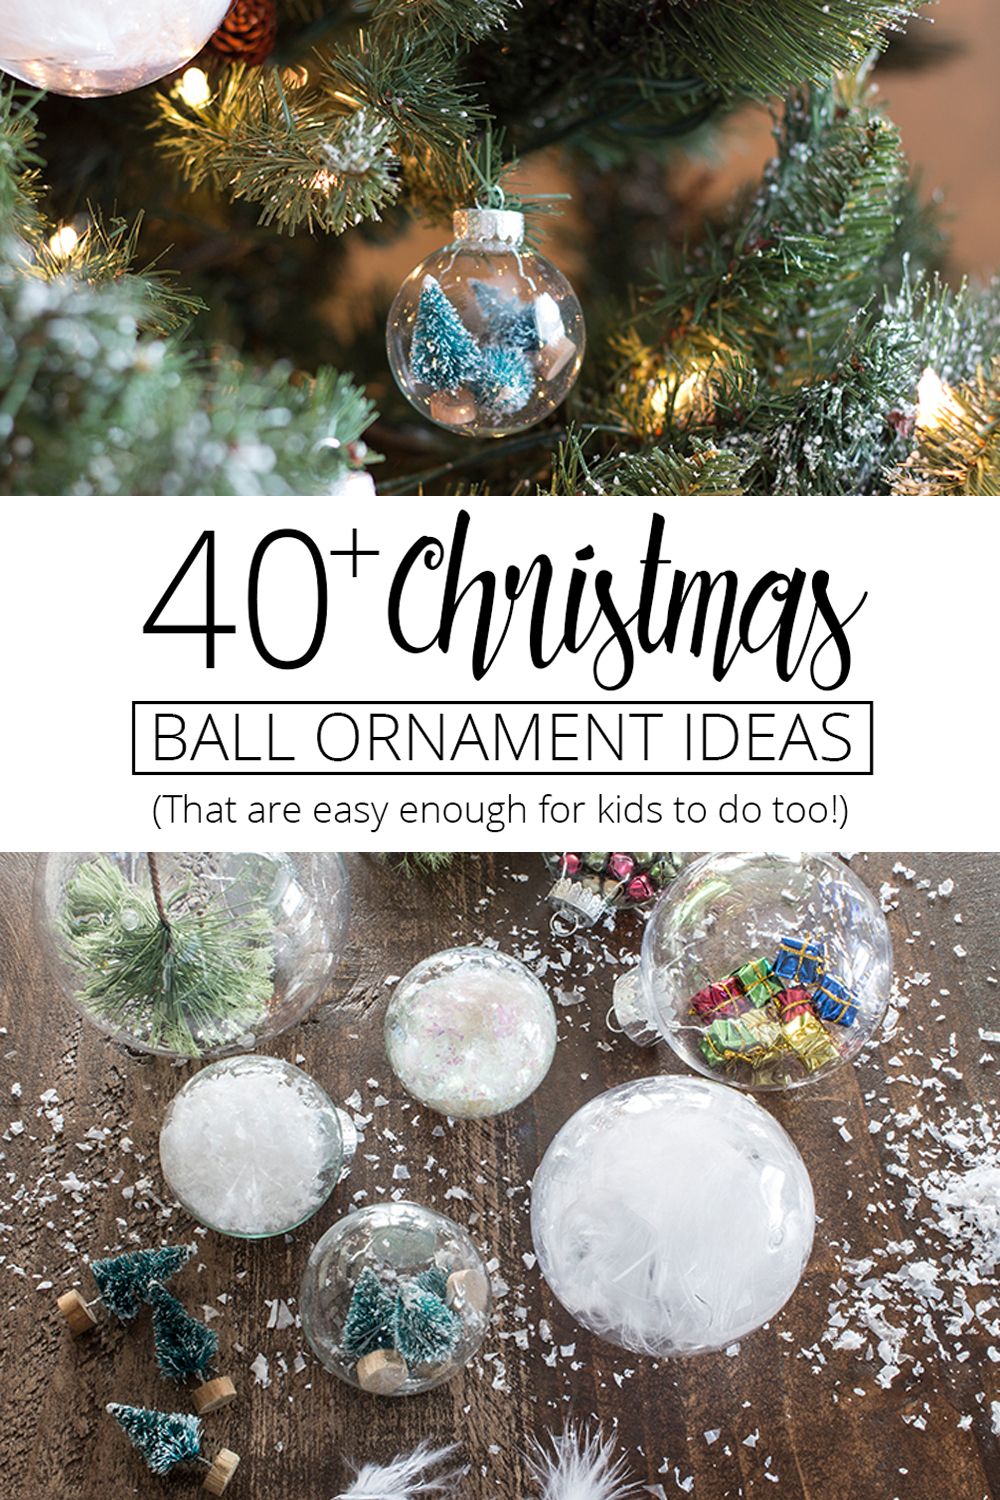 Create memories making your own ornaments with over 40 easy to make Christmas Ball Ornament Ideas! Free printable, easy to find supplies.